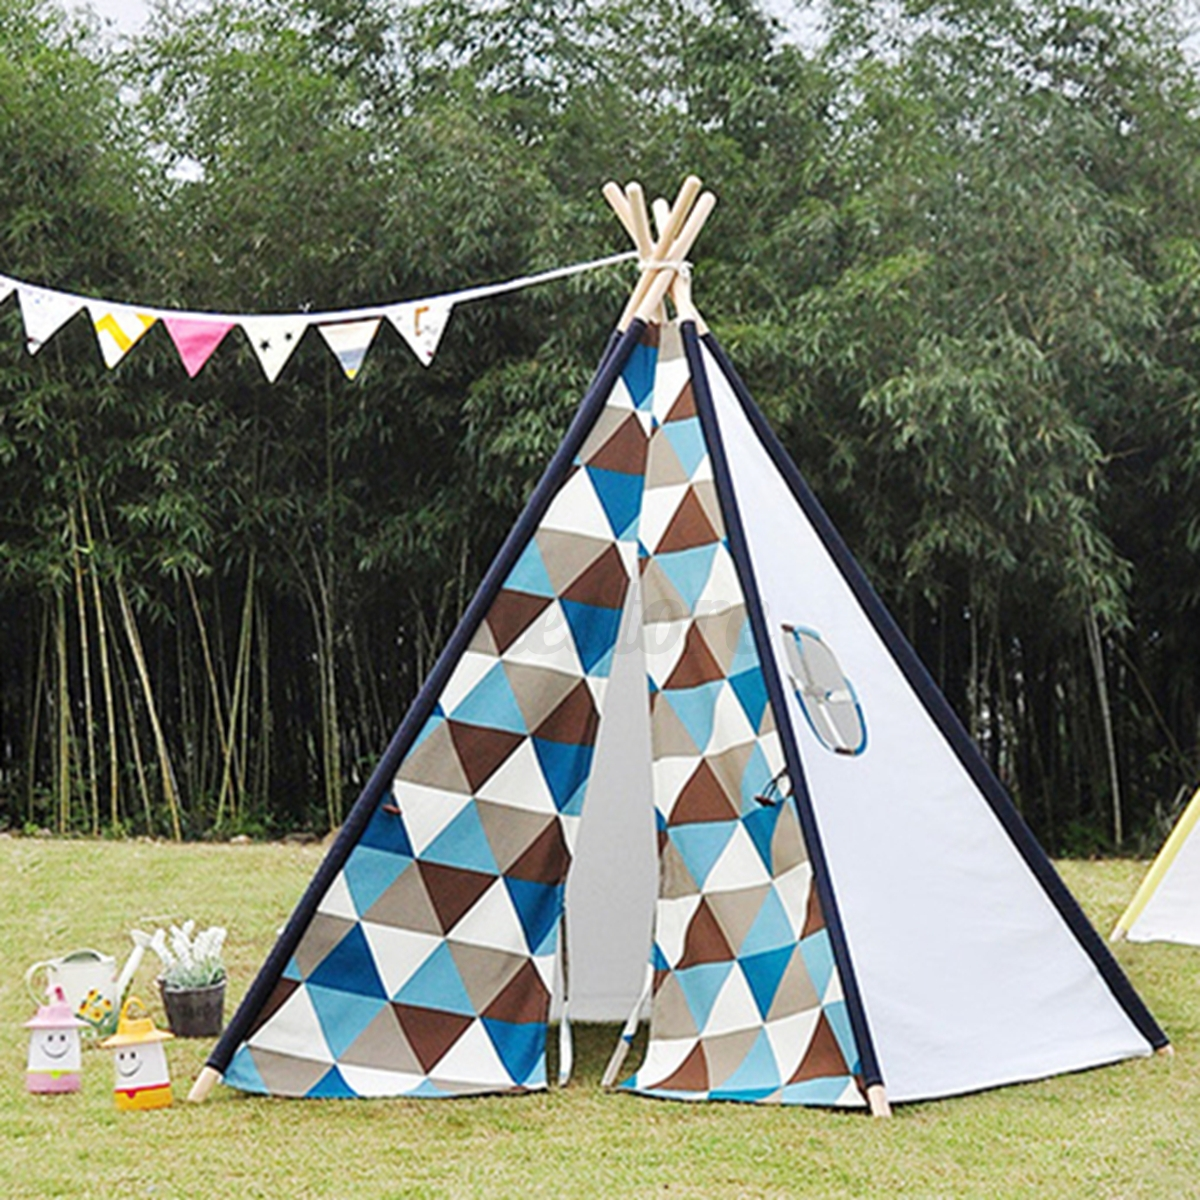 Childrenu0027s Kids Teepee Play Tent Indian wigwam Geometrie Pentago Base In/ Outdoor | eBay & Childrenu0027s Kids Teepee Play Tent Indian wigwam Geometrie Pentago ...